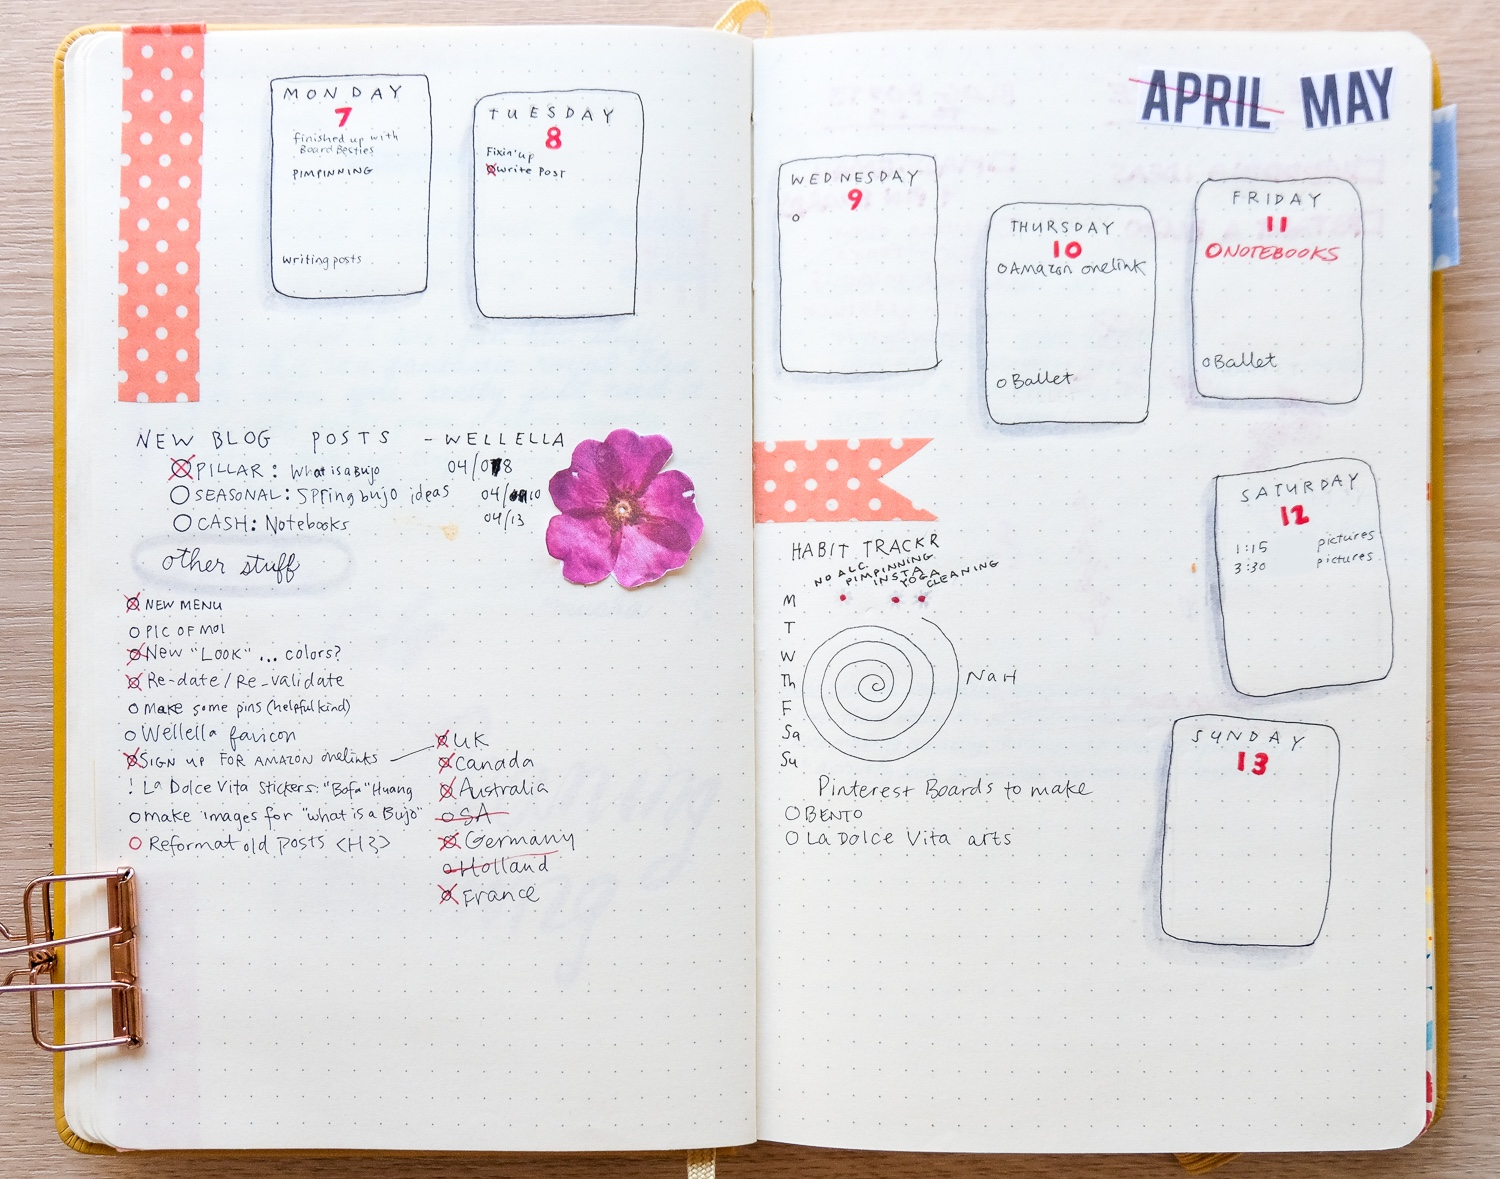 Bullet journal weekly spread with doodles, washi tape, stickers, and cute design.